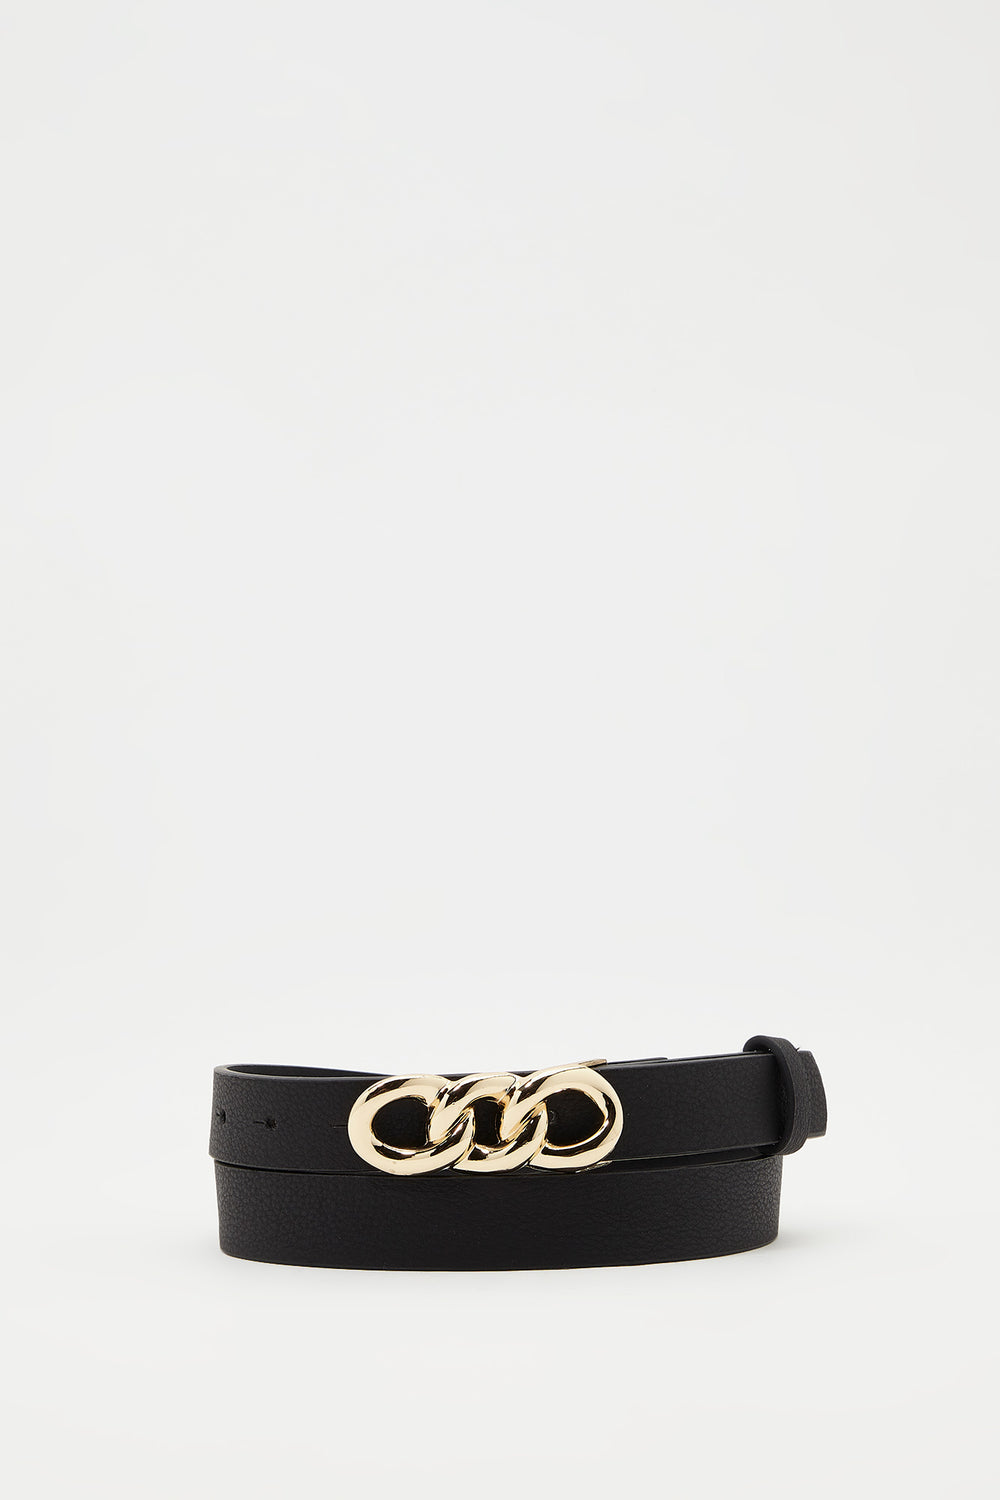 Chain Buckle Belt Black